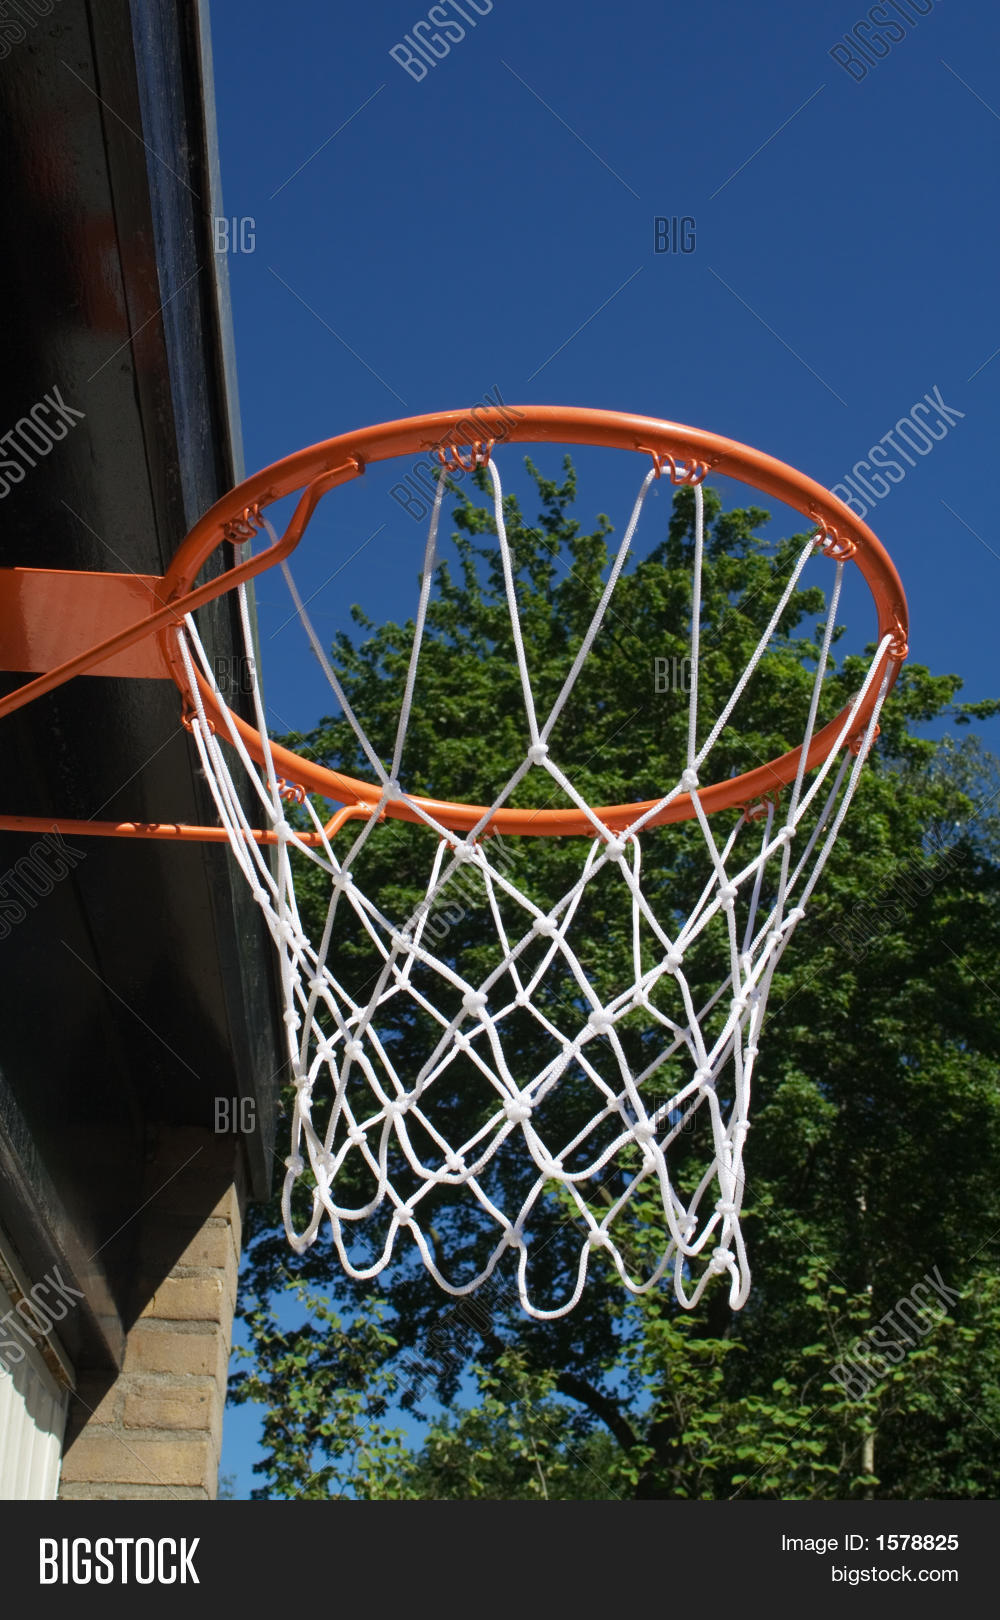 Basketball hoop attached garage image photo bigstock for Basketball garage